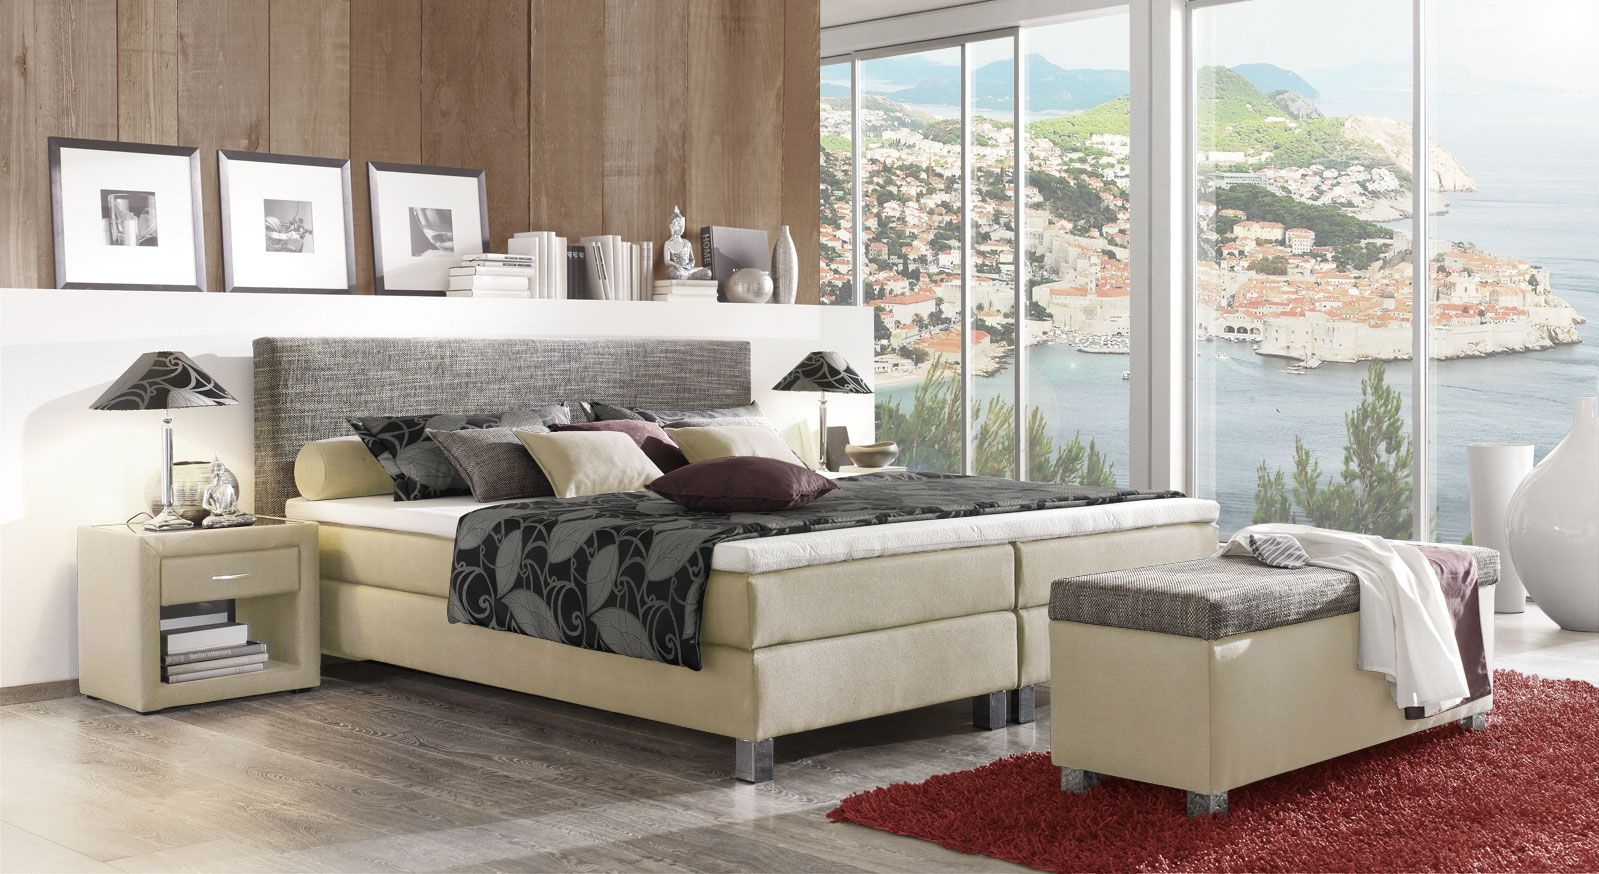 Boxspringbett Triberio Aktion in Creme Grau